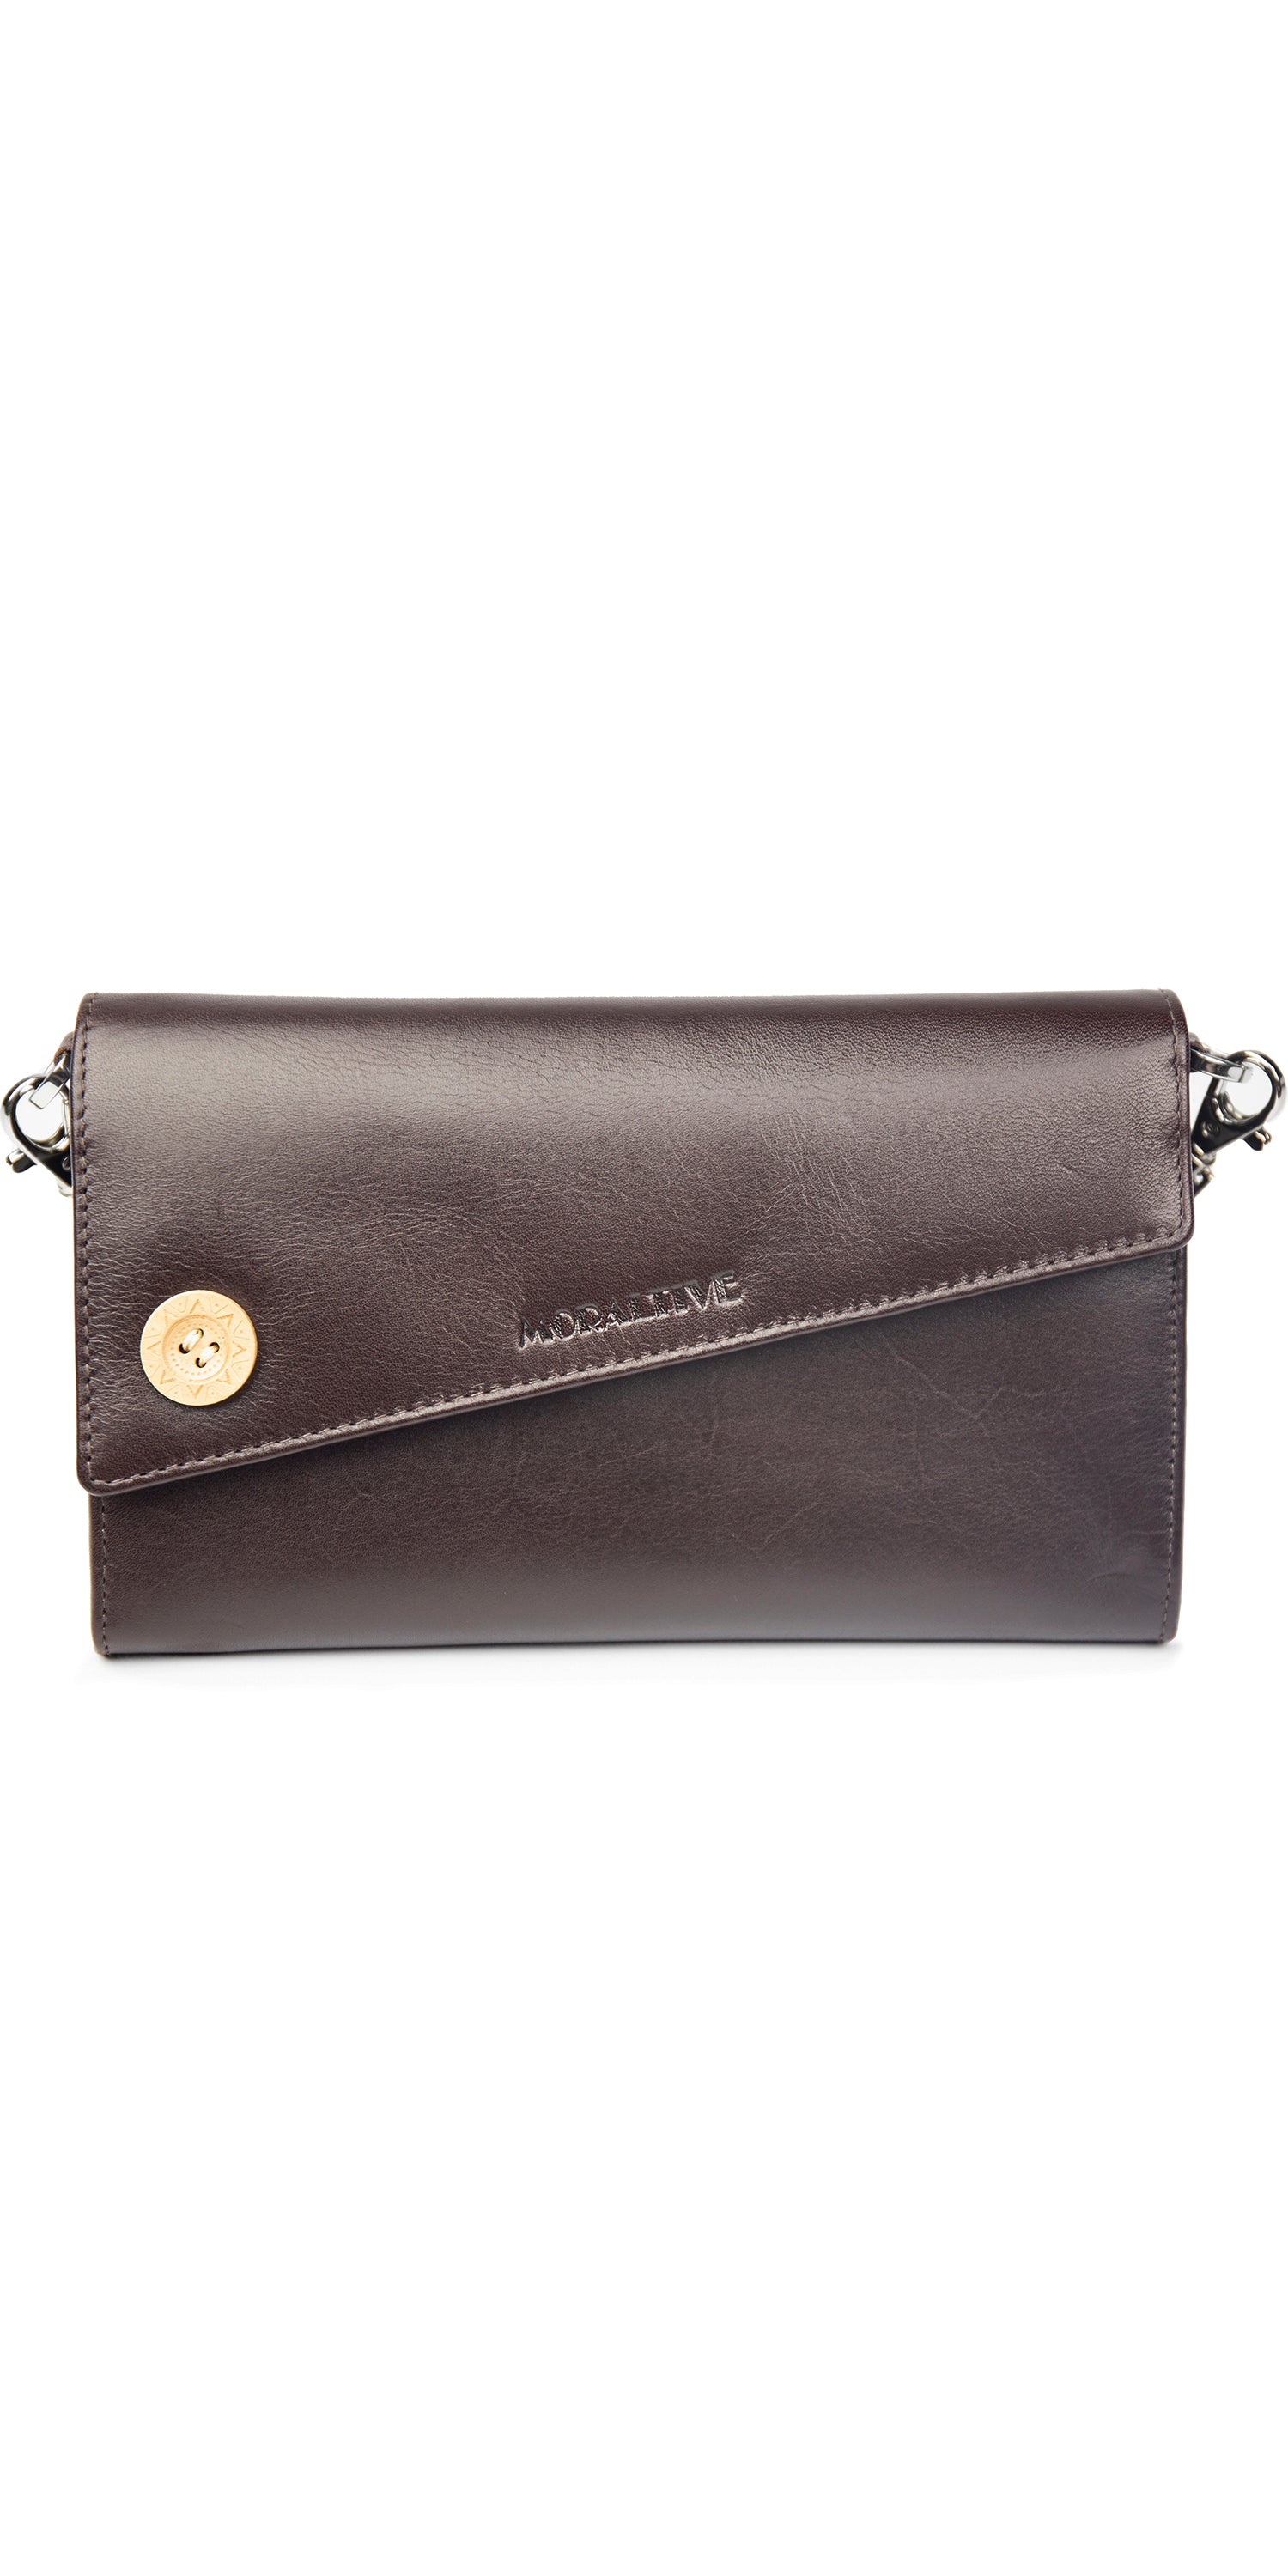 Moraltive Clutch Wallet Brown